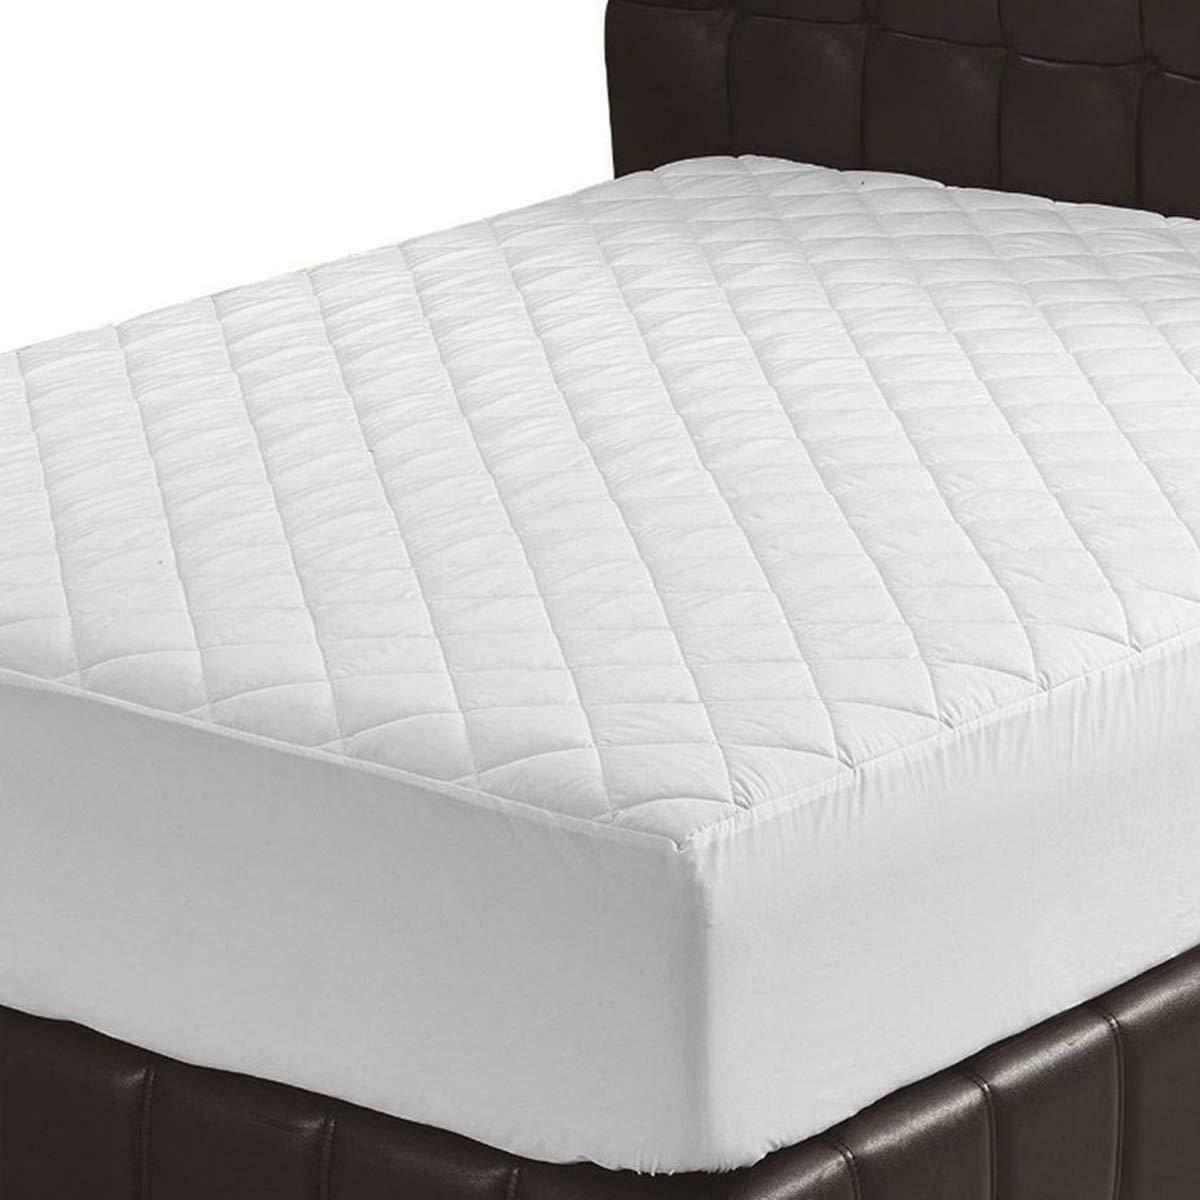 quilted fitted mattress pad cover stretches up